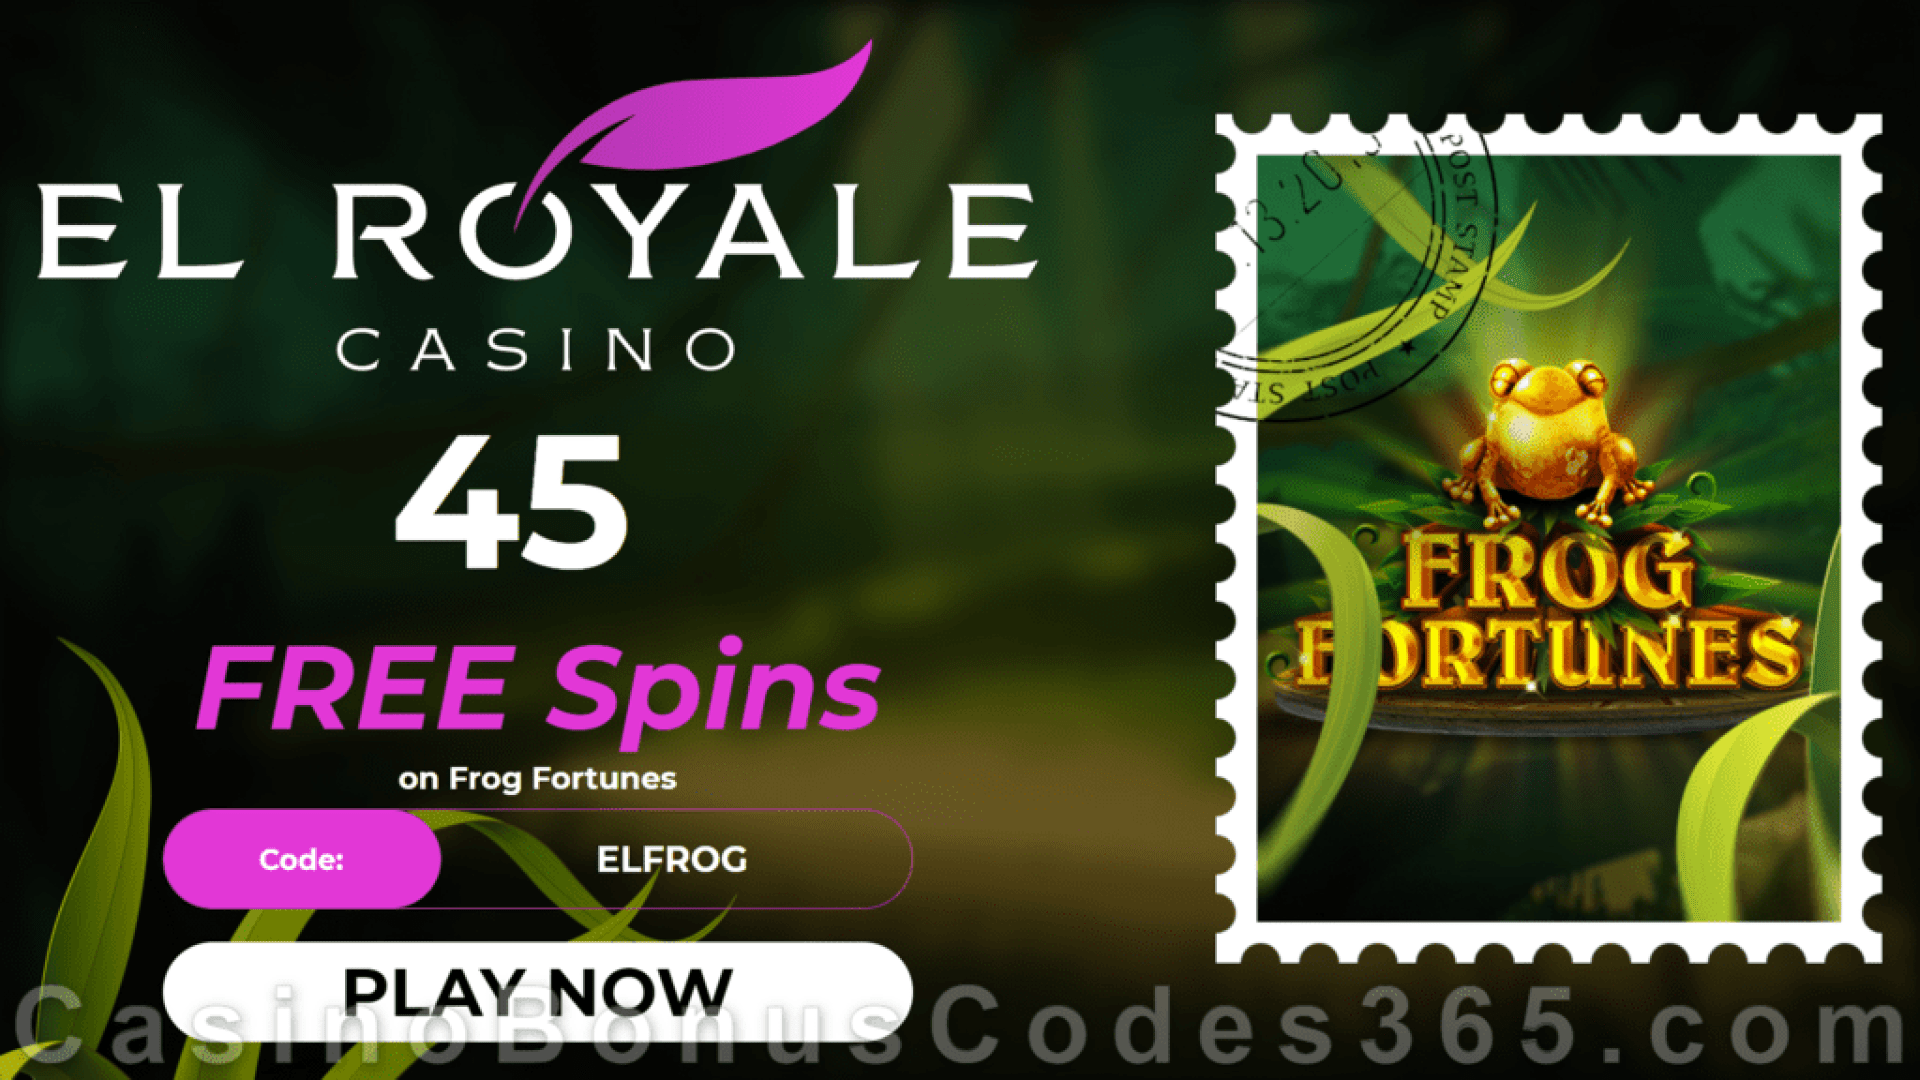 El Royale Casino 45 FREE Spins RTG Frog Fortunes Special No Deposit Welcome Deal